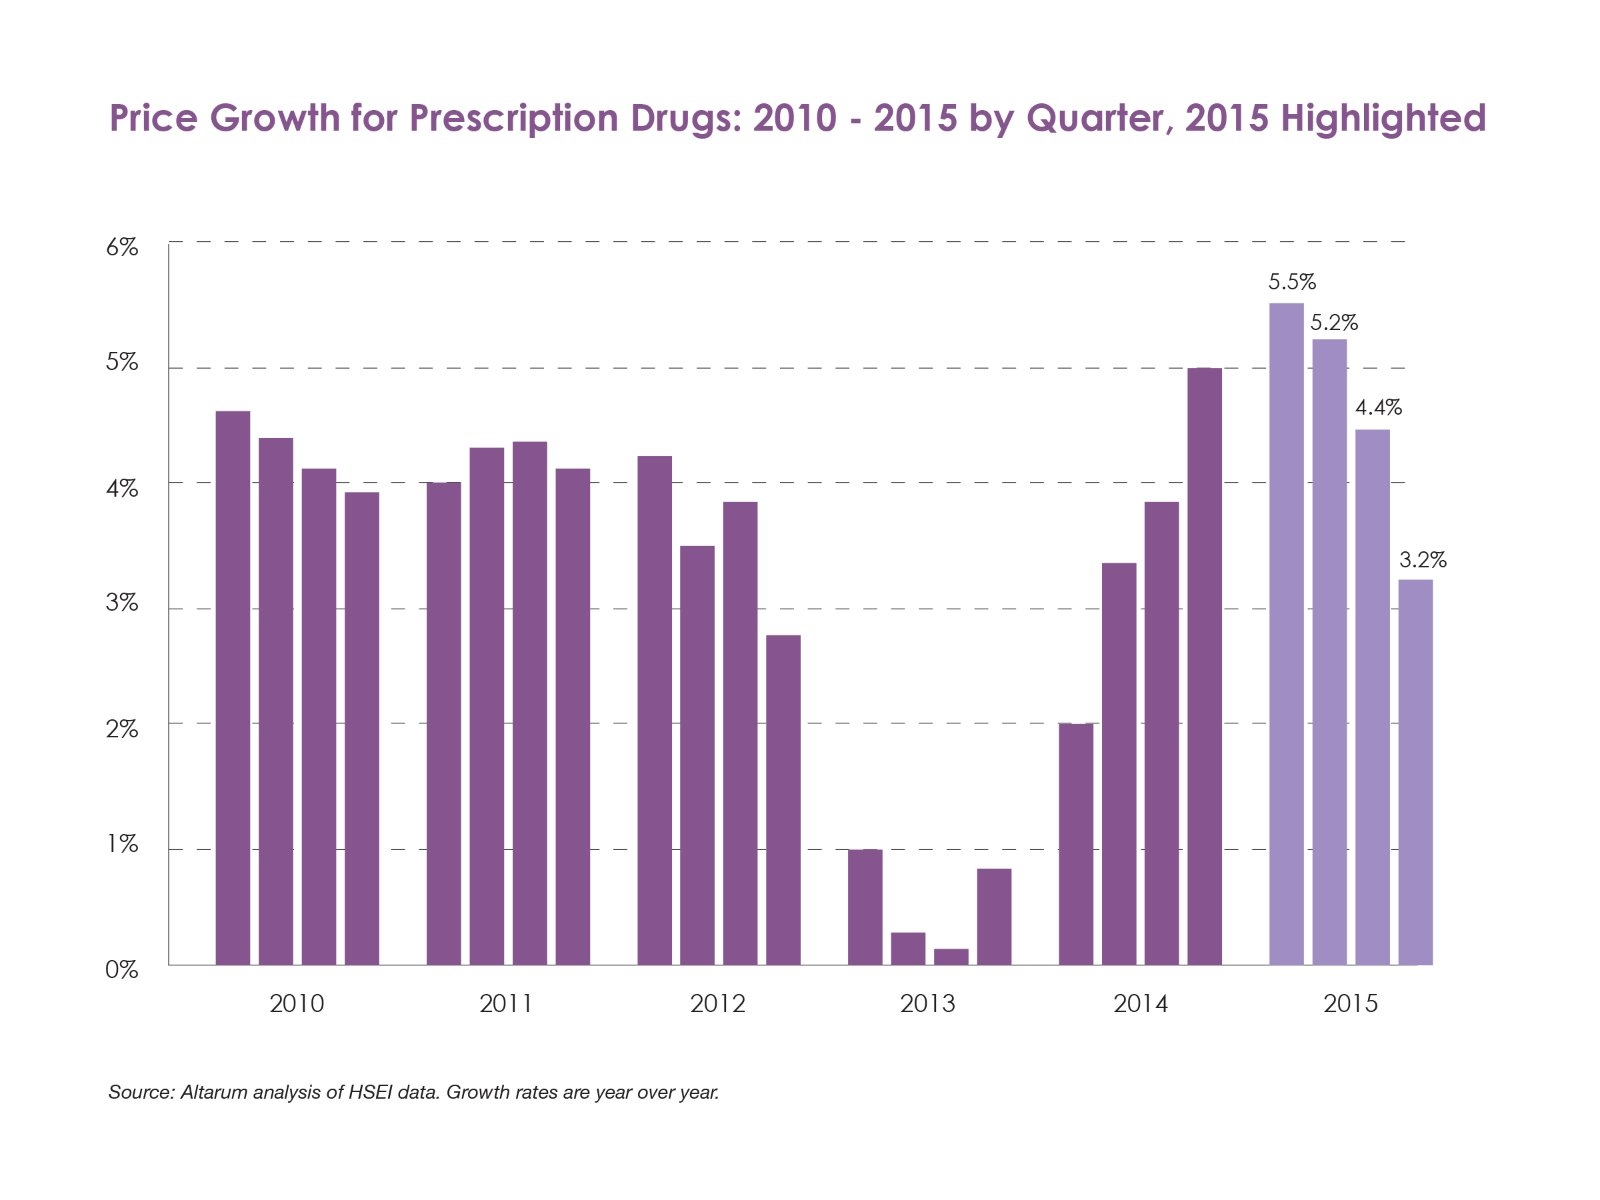 Price growth for prescription drugs between 2010 and 2016.